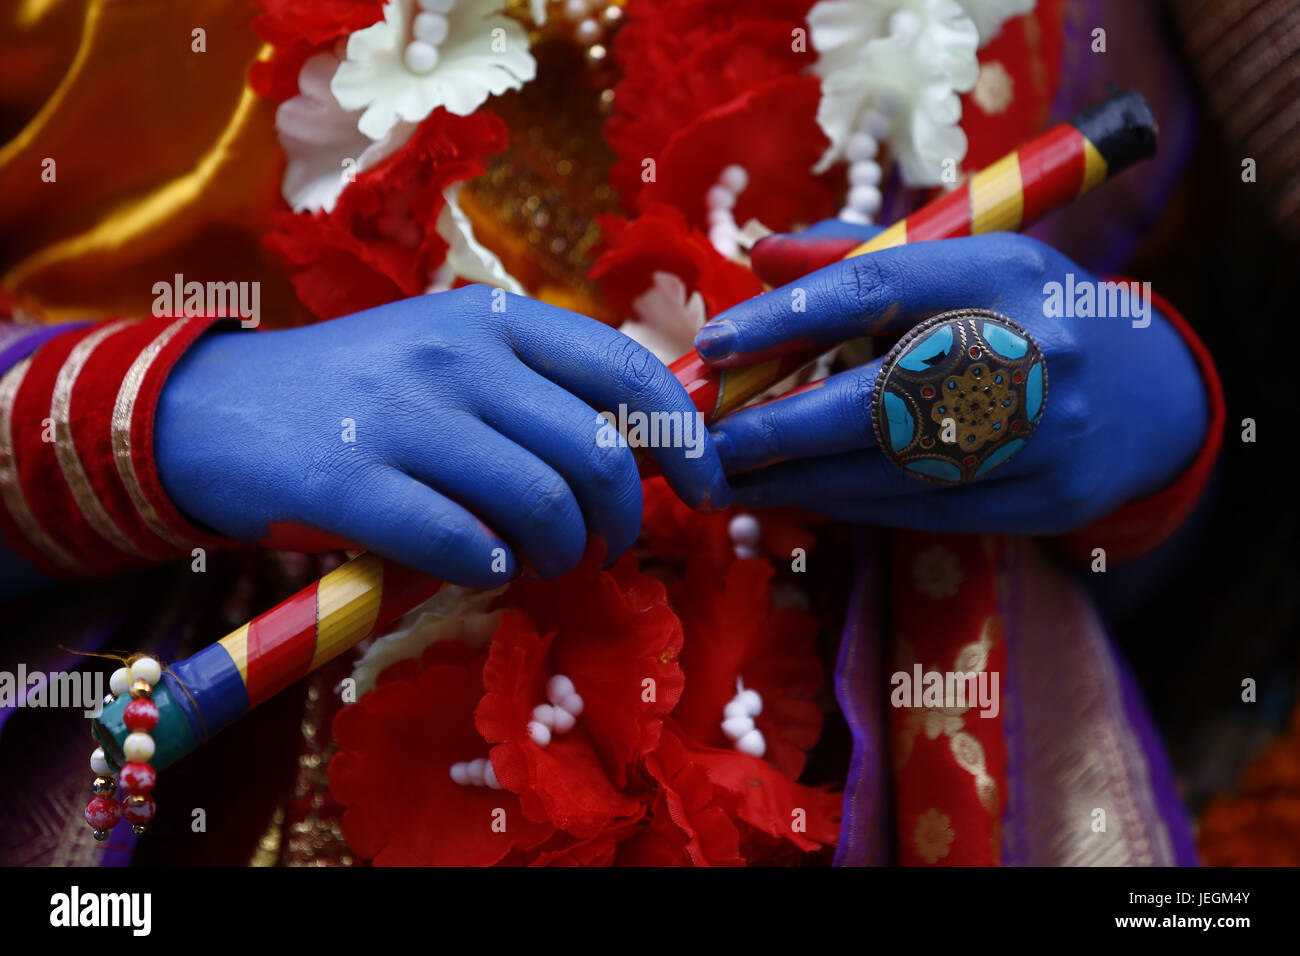 Kathmandu, Nepal. 25th June, 2017. Hands of a Nepalese person dressed as Hindu Deity Krishna are pictured as they Stock Photo